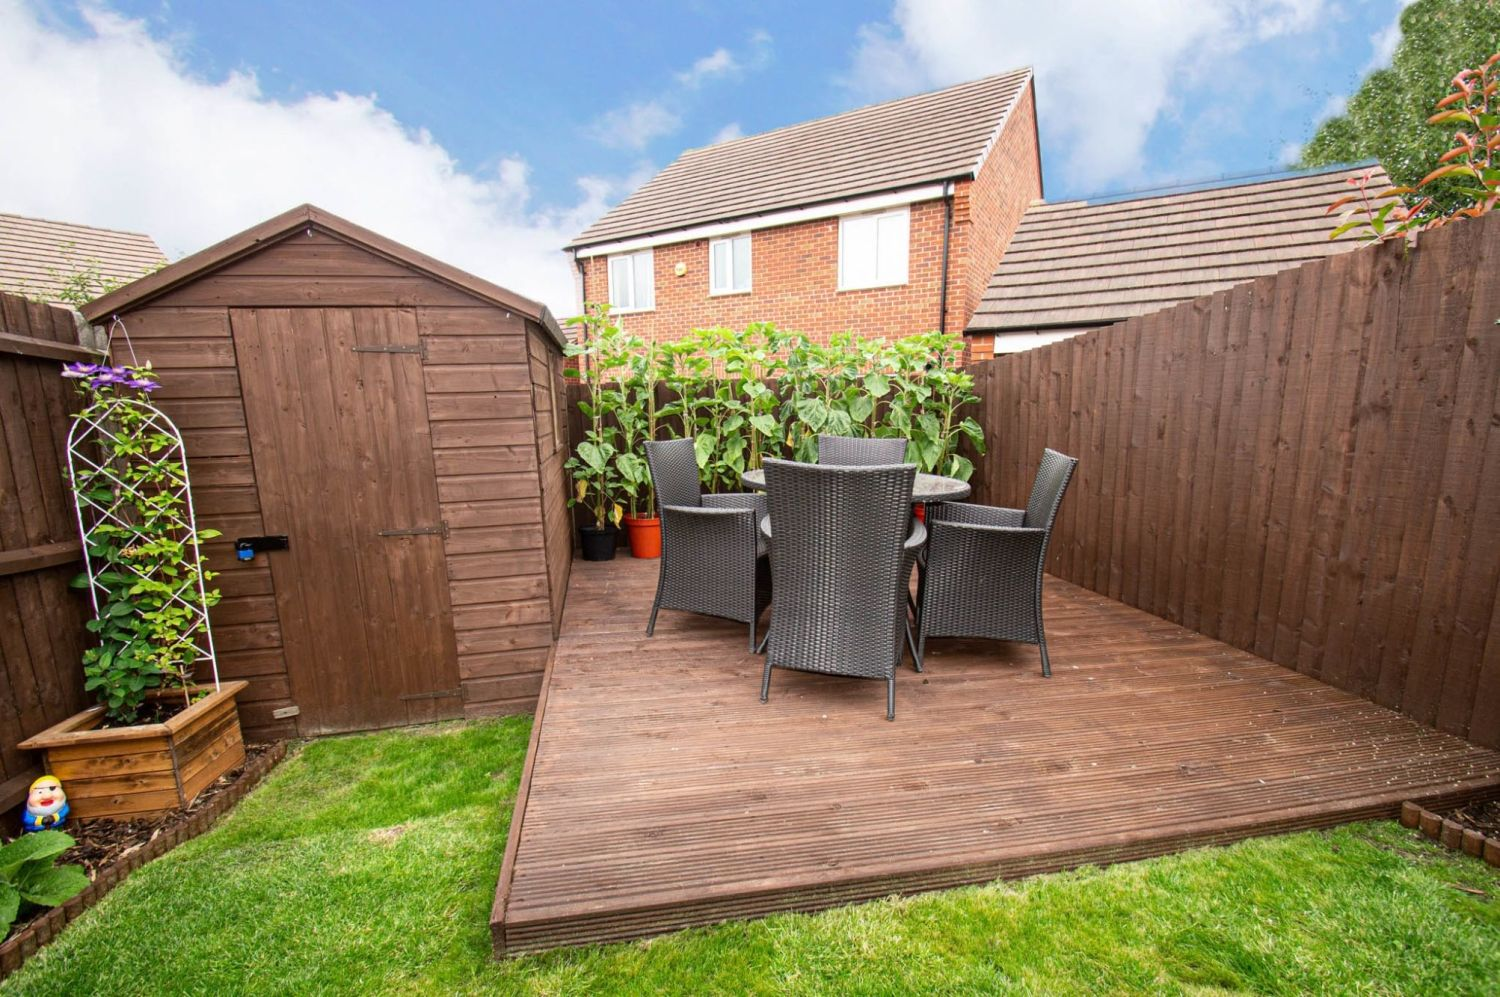 2 bed semi-detached for sale in Bobeche Place, Kingswinford  - Property Image 11